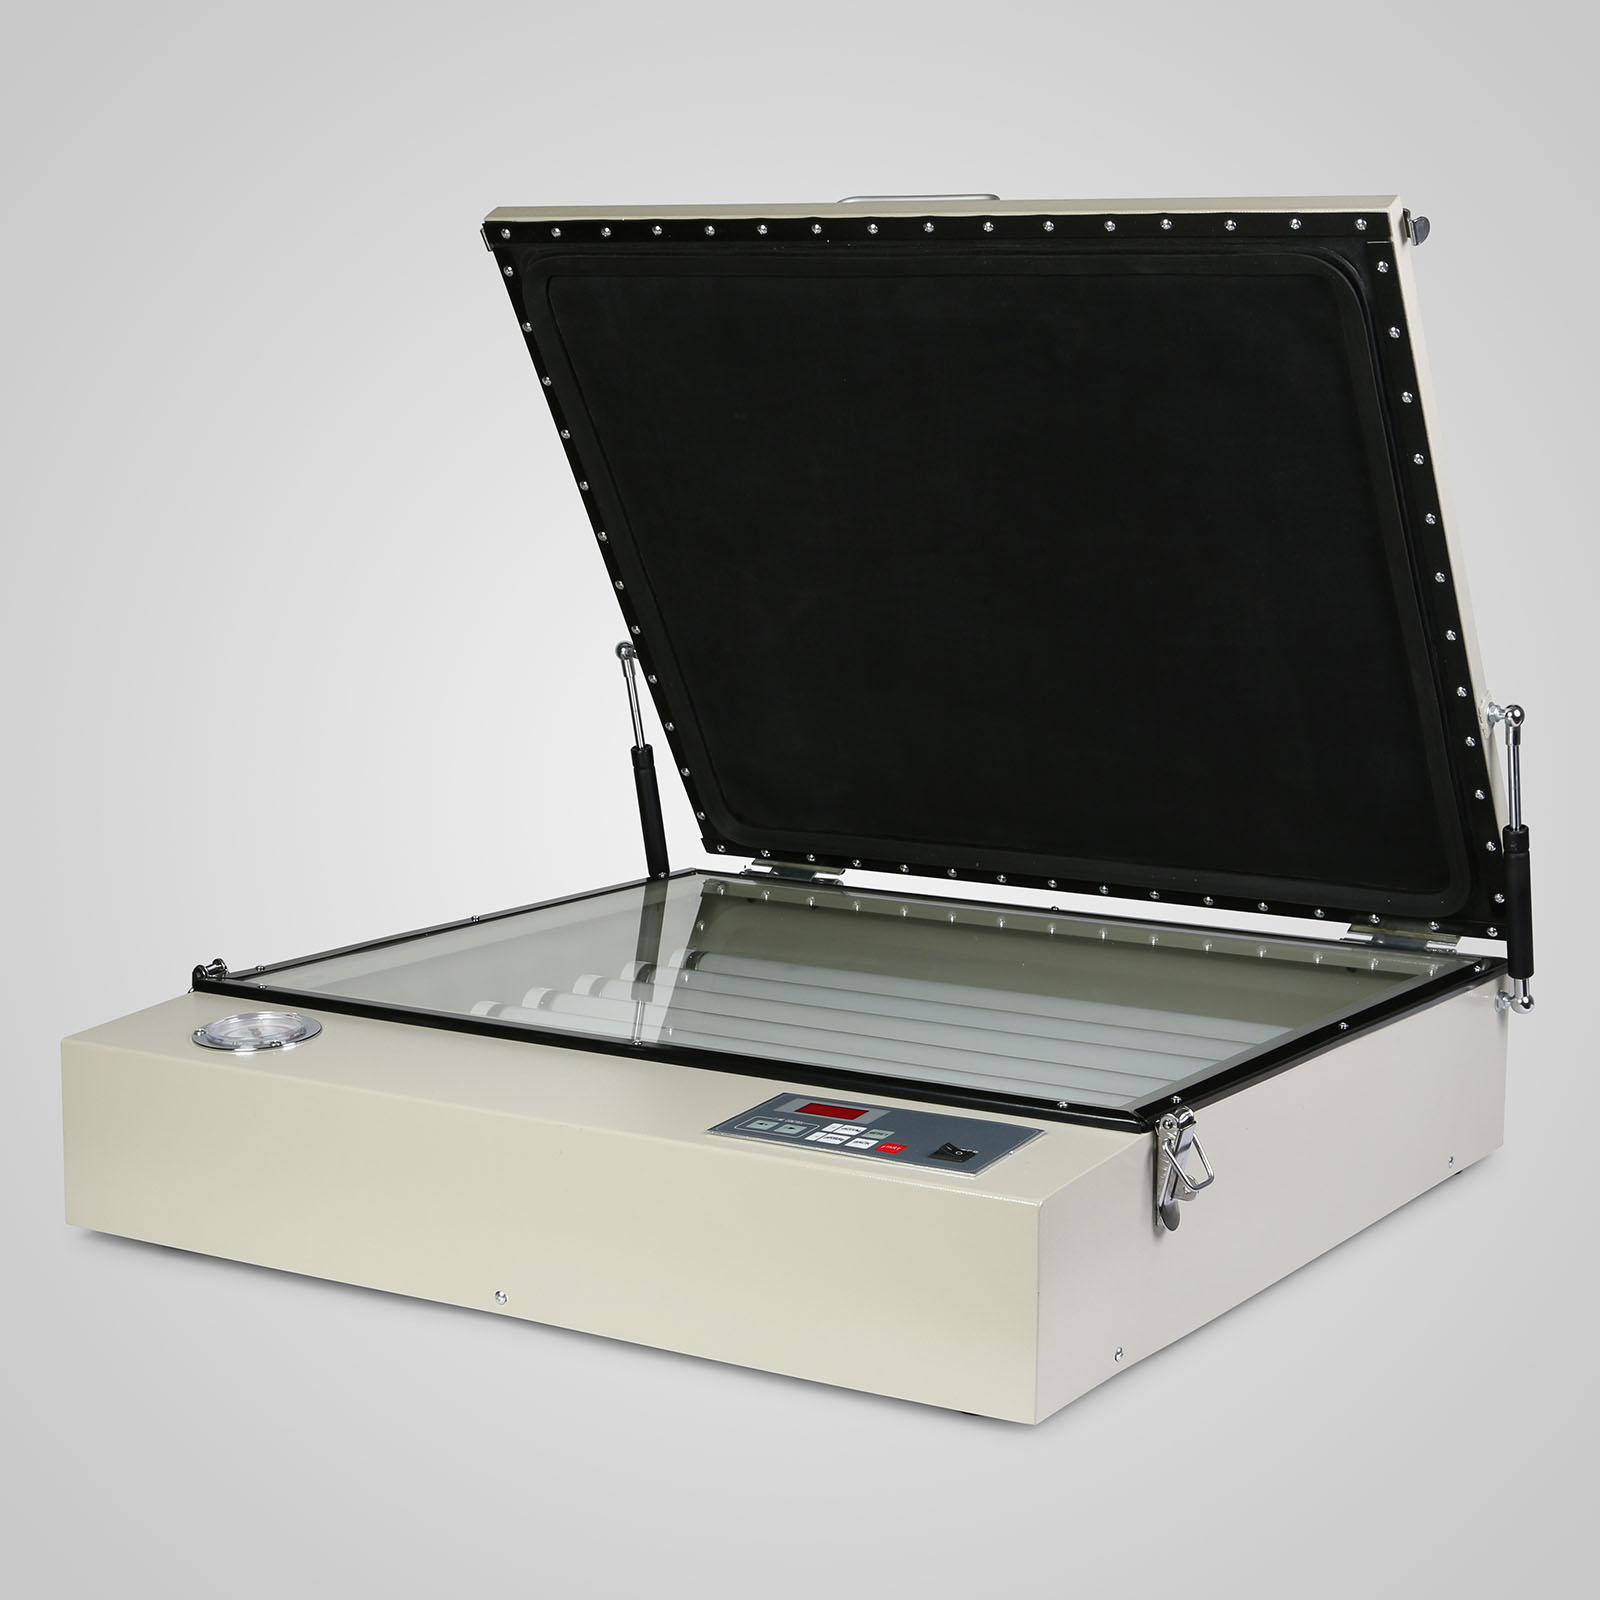 Diy Vacuum Table Screen Printing 50cmx60cm 20 Quotx24 Quot Precise Vacuum Uv Exposure Unit Screen